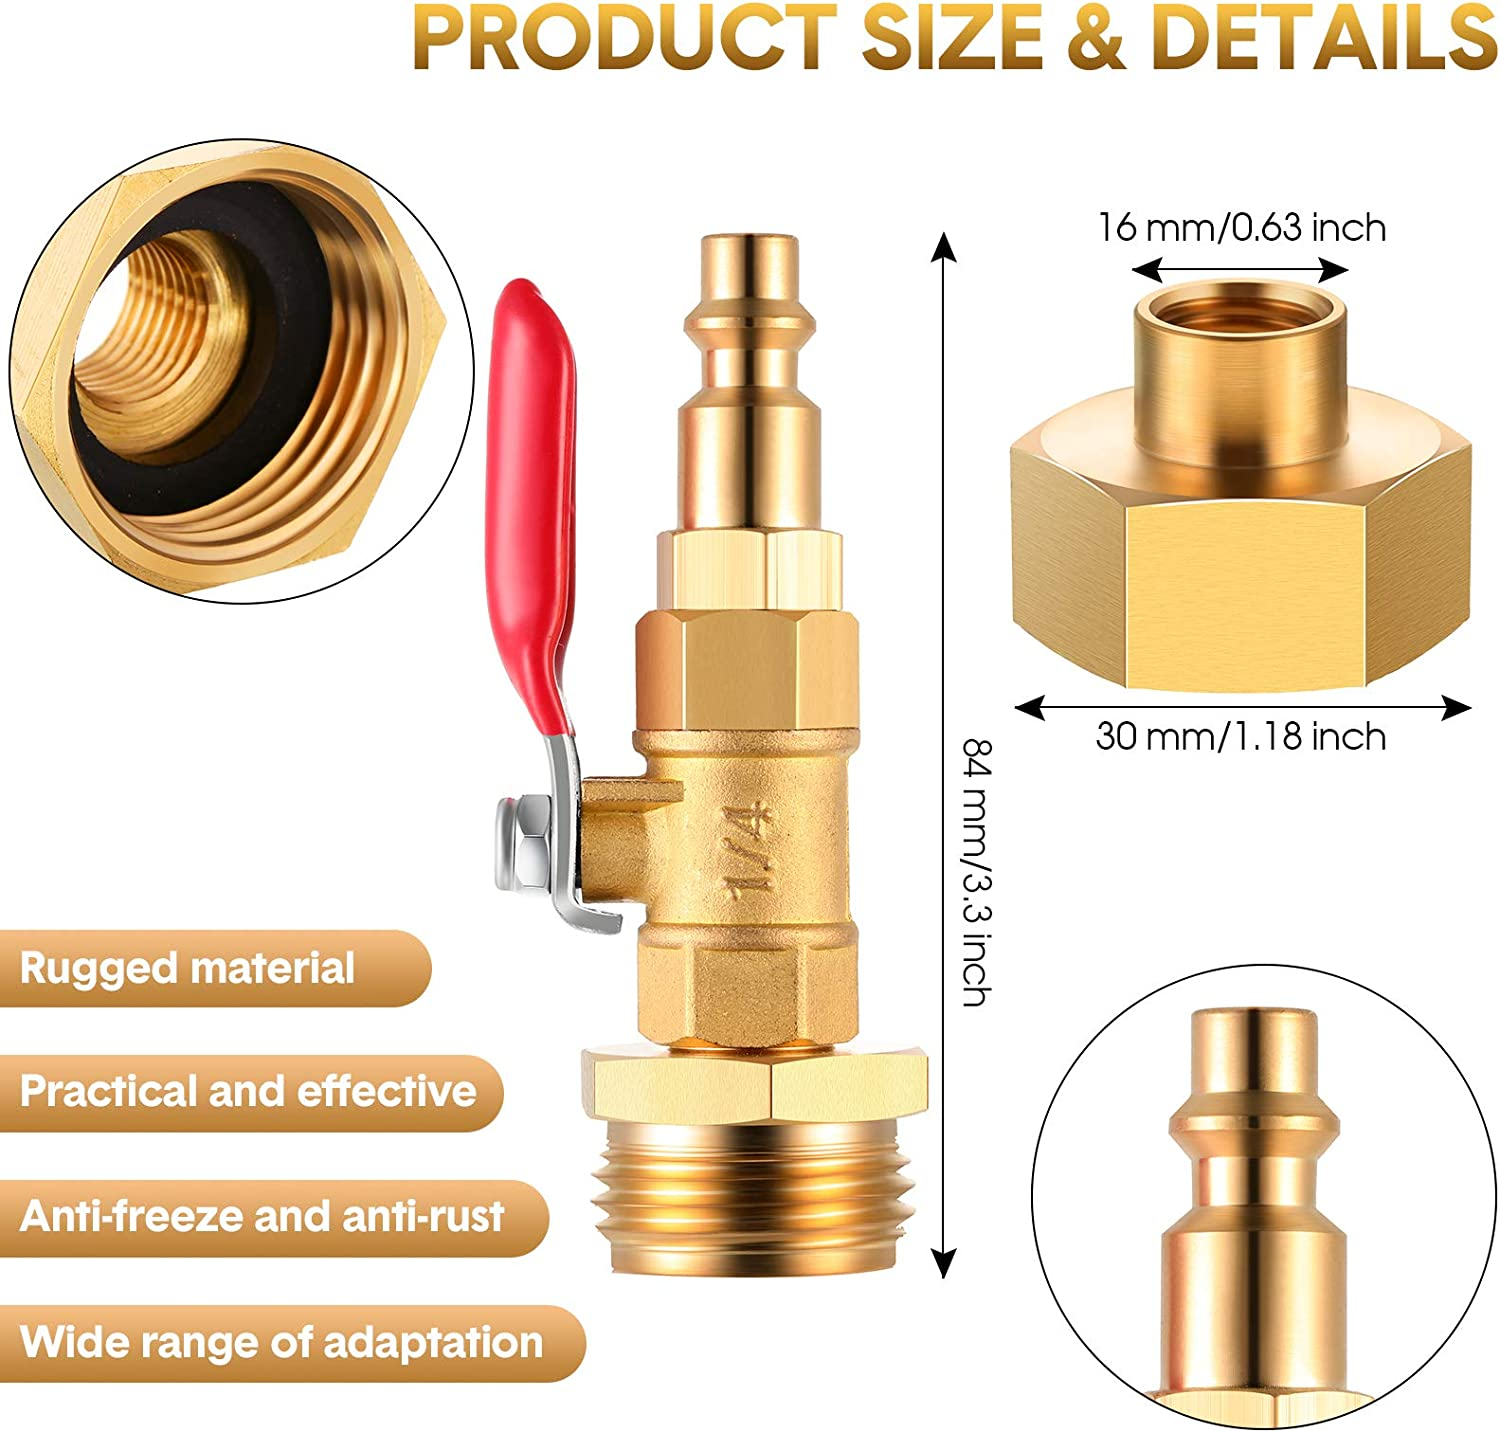 Brass Made 3//4 Inch Female Thread Brass Adapter and Roll of Tape Winterize Blowout Adapter Winterizing Quick Adapter with Ball Valve with 1//4 Inch Connecting Plug and 3//4 Inch Male GHT Thread